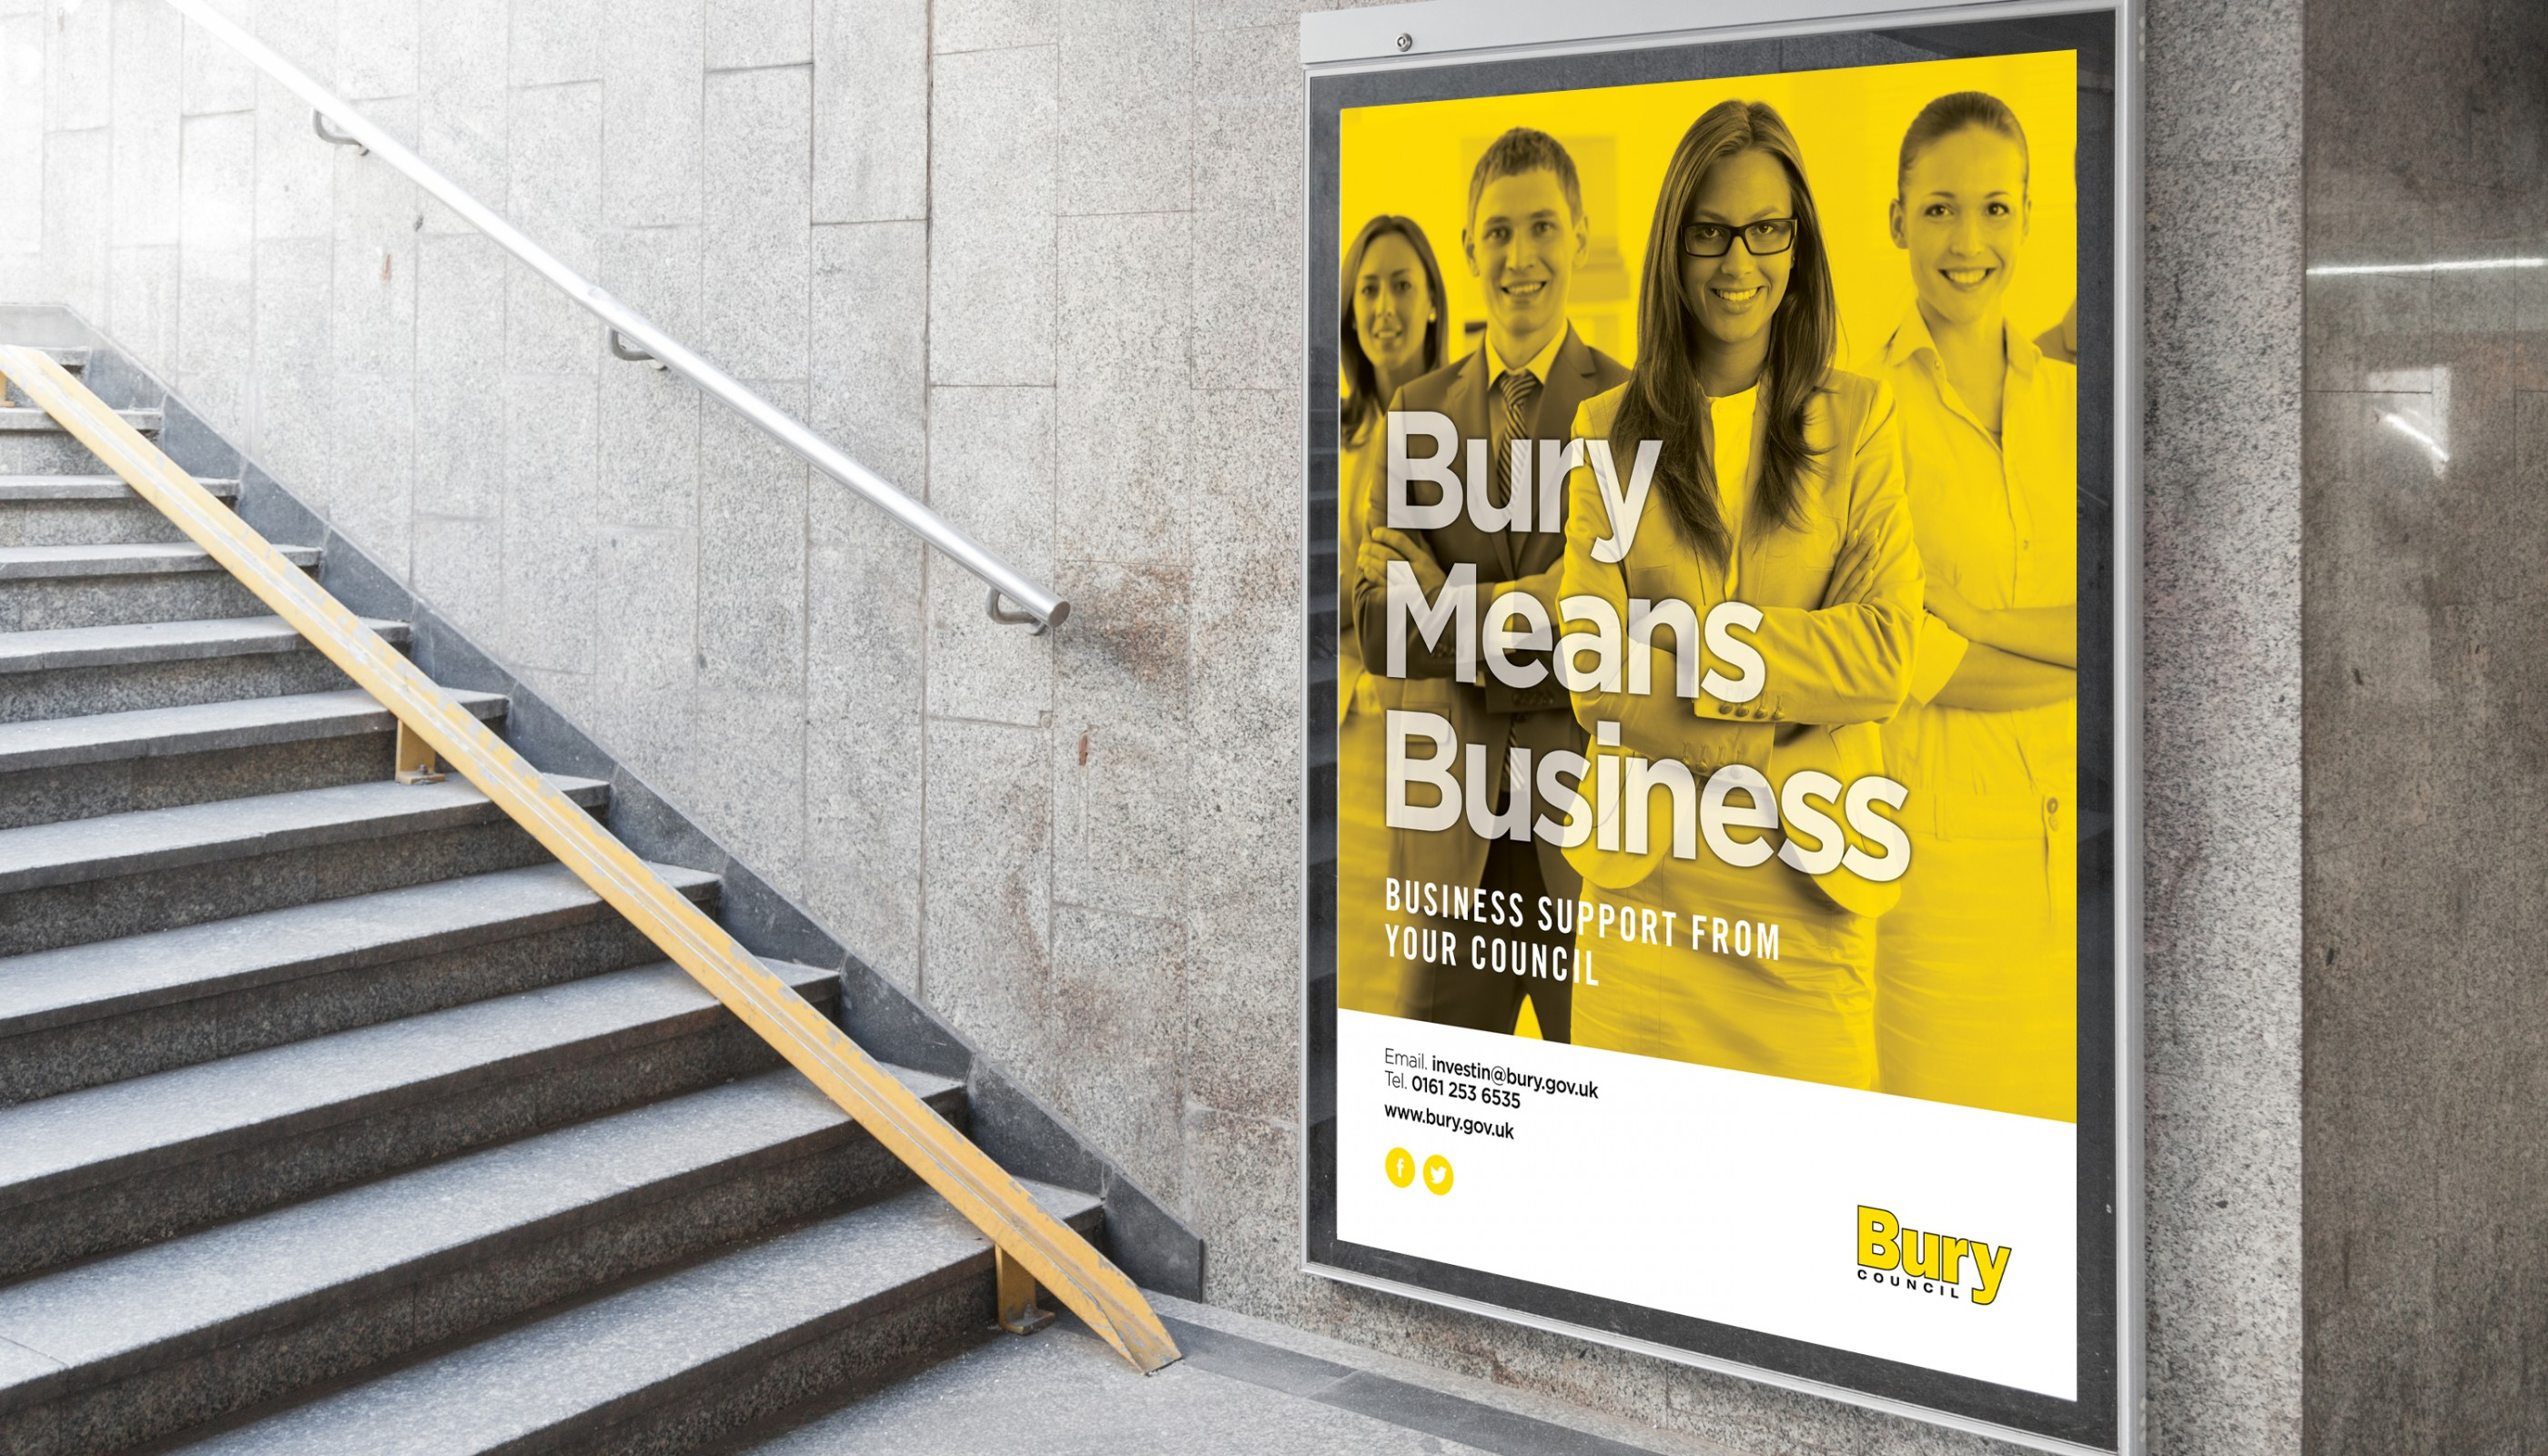 creative design and print for Bury Council, the poster is located in underground hall